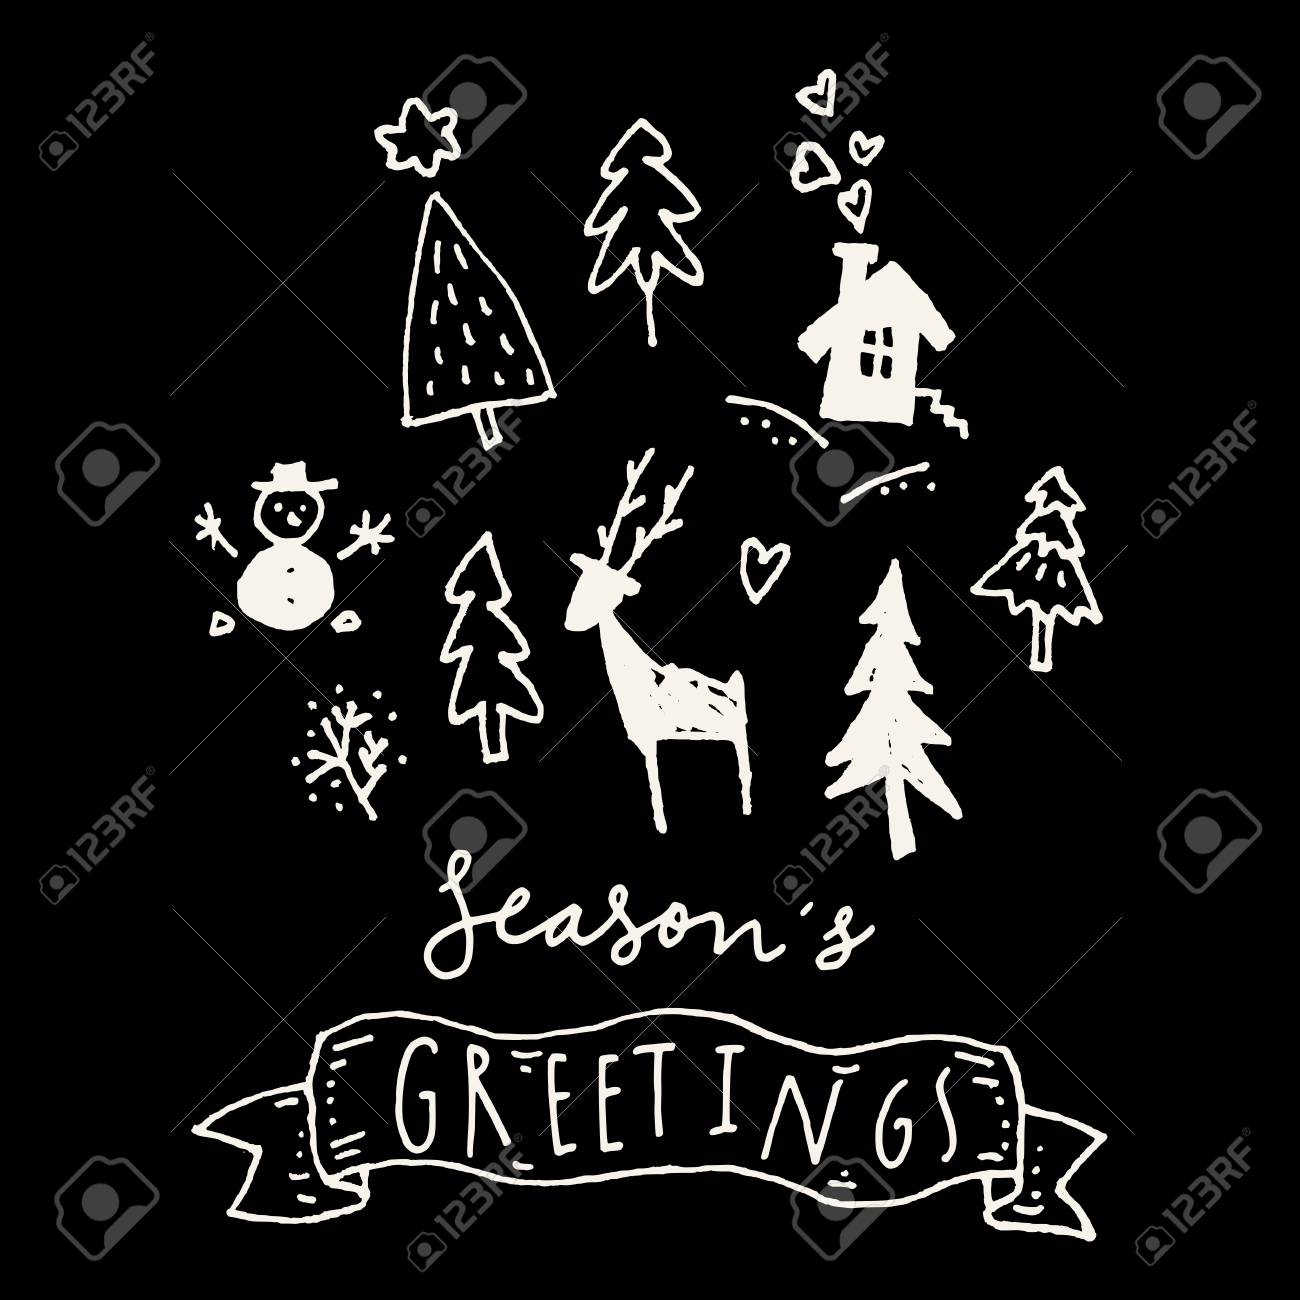 Seasons greetings merry christmas calligraphic hand drawn greeting seasons greetings merry christmas calligraphic hand drawn greeting card in black and white vector m4hsunfo